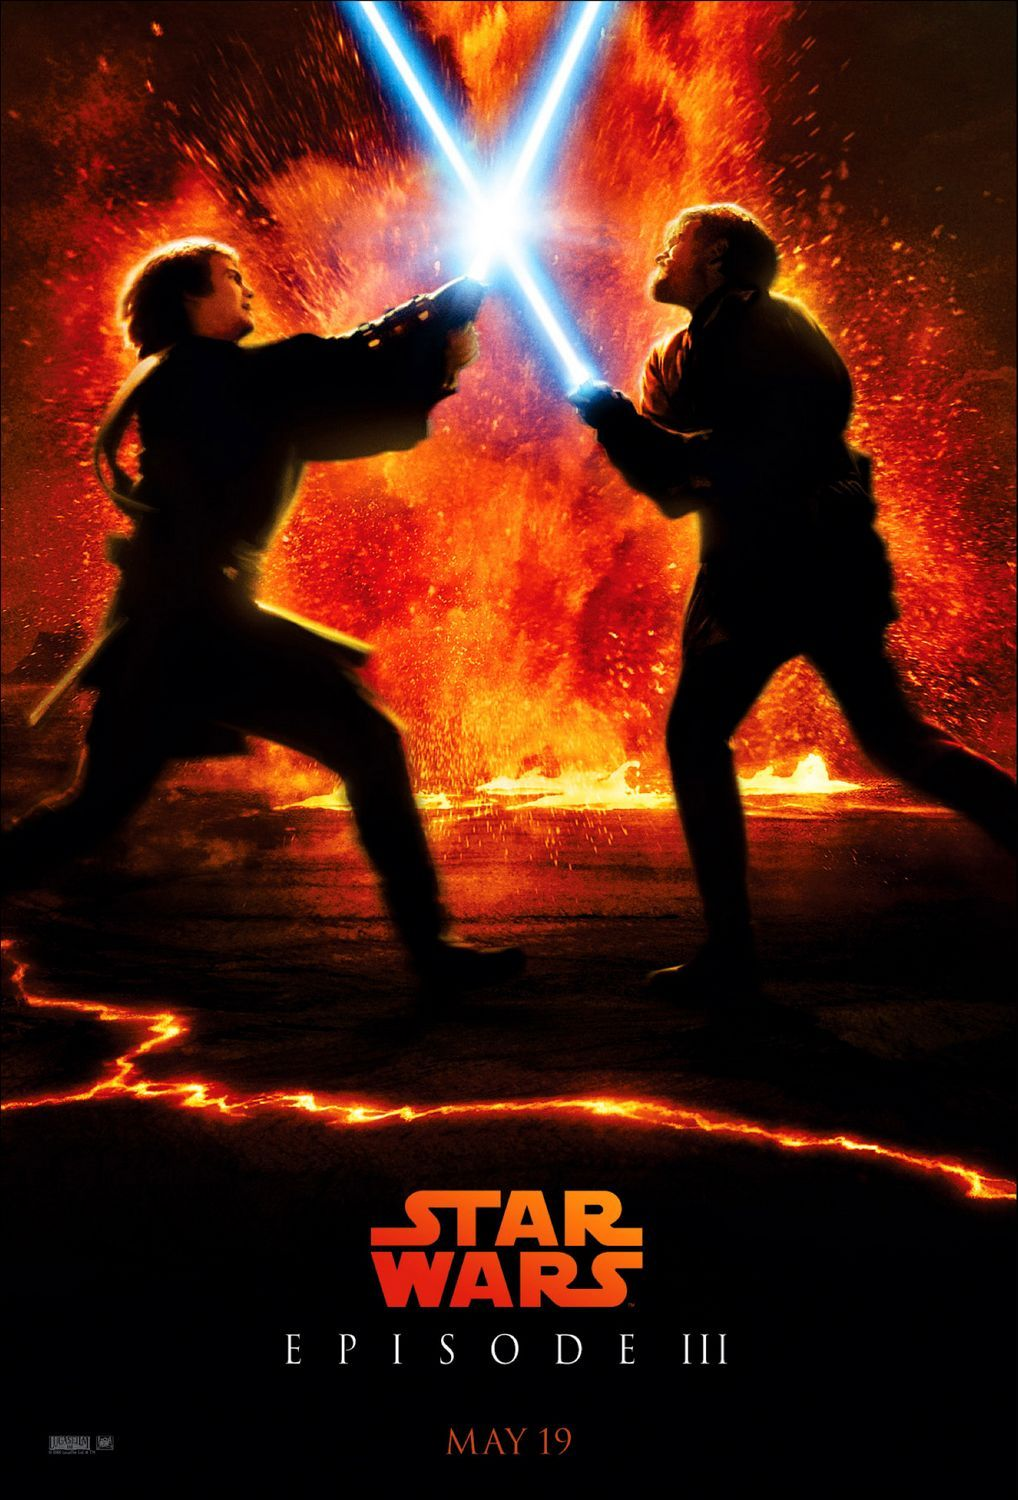 Star Wars Episode 3 Revenge Of The Sith Poster 4 Jpg 1018 1500 Star War Episode 3 Star Wars Watch Star Wars Episodes